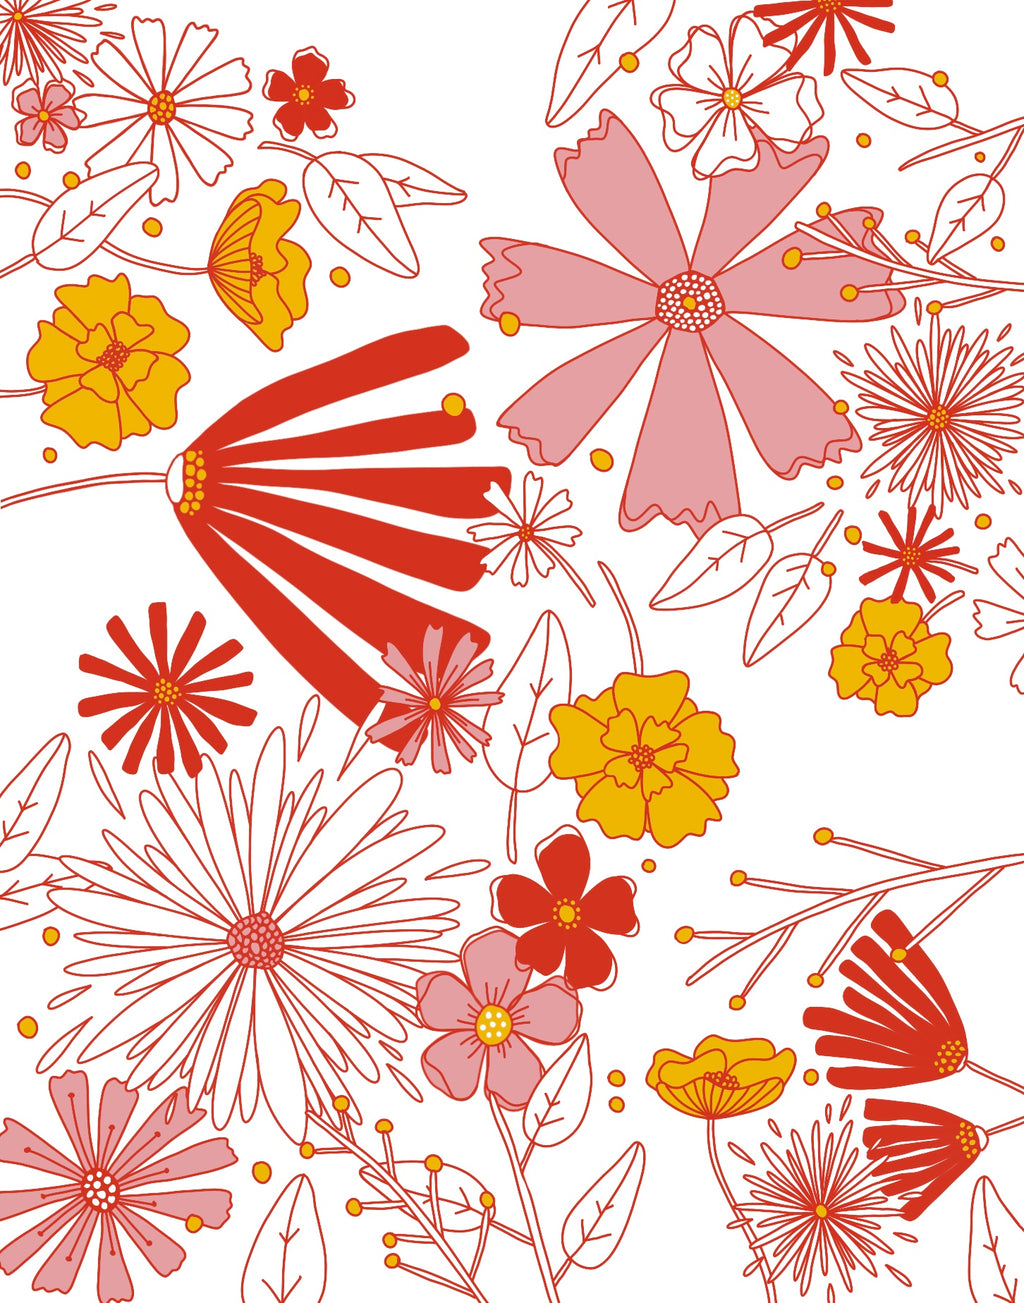 FREE DOWNLOAD: Flower Print